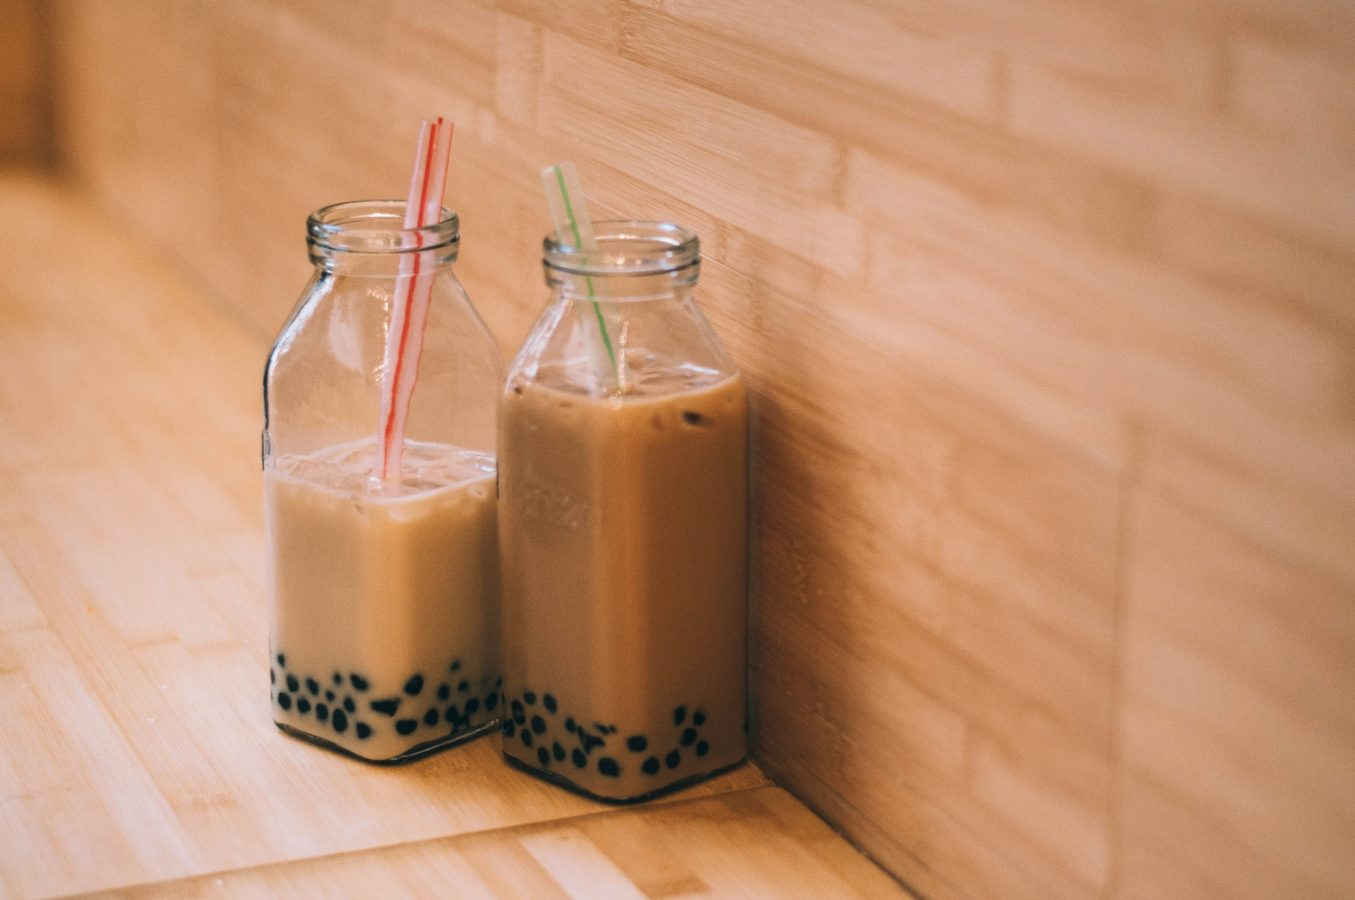 Make a healthy version of your own bubble tea at home with this recipe